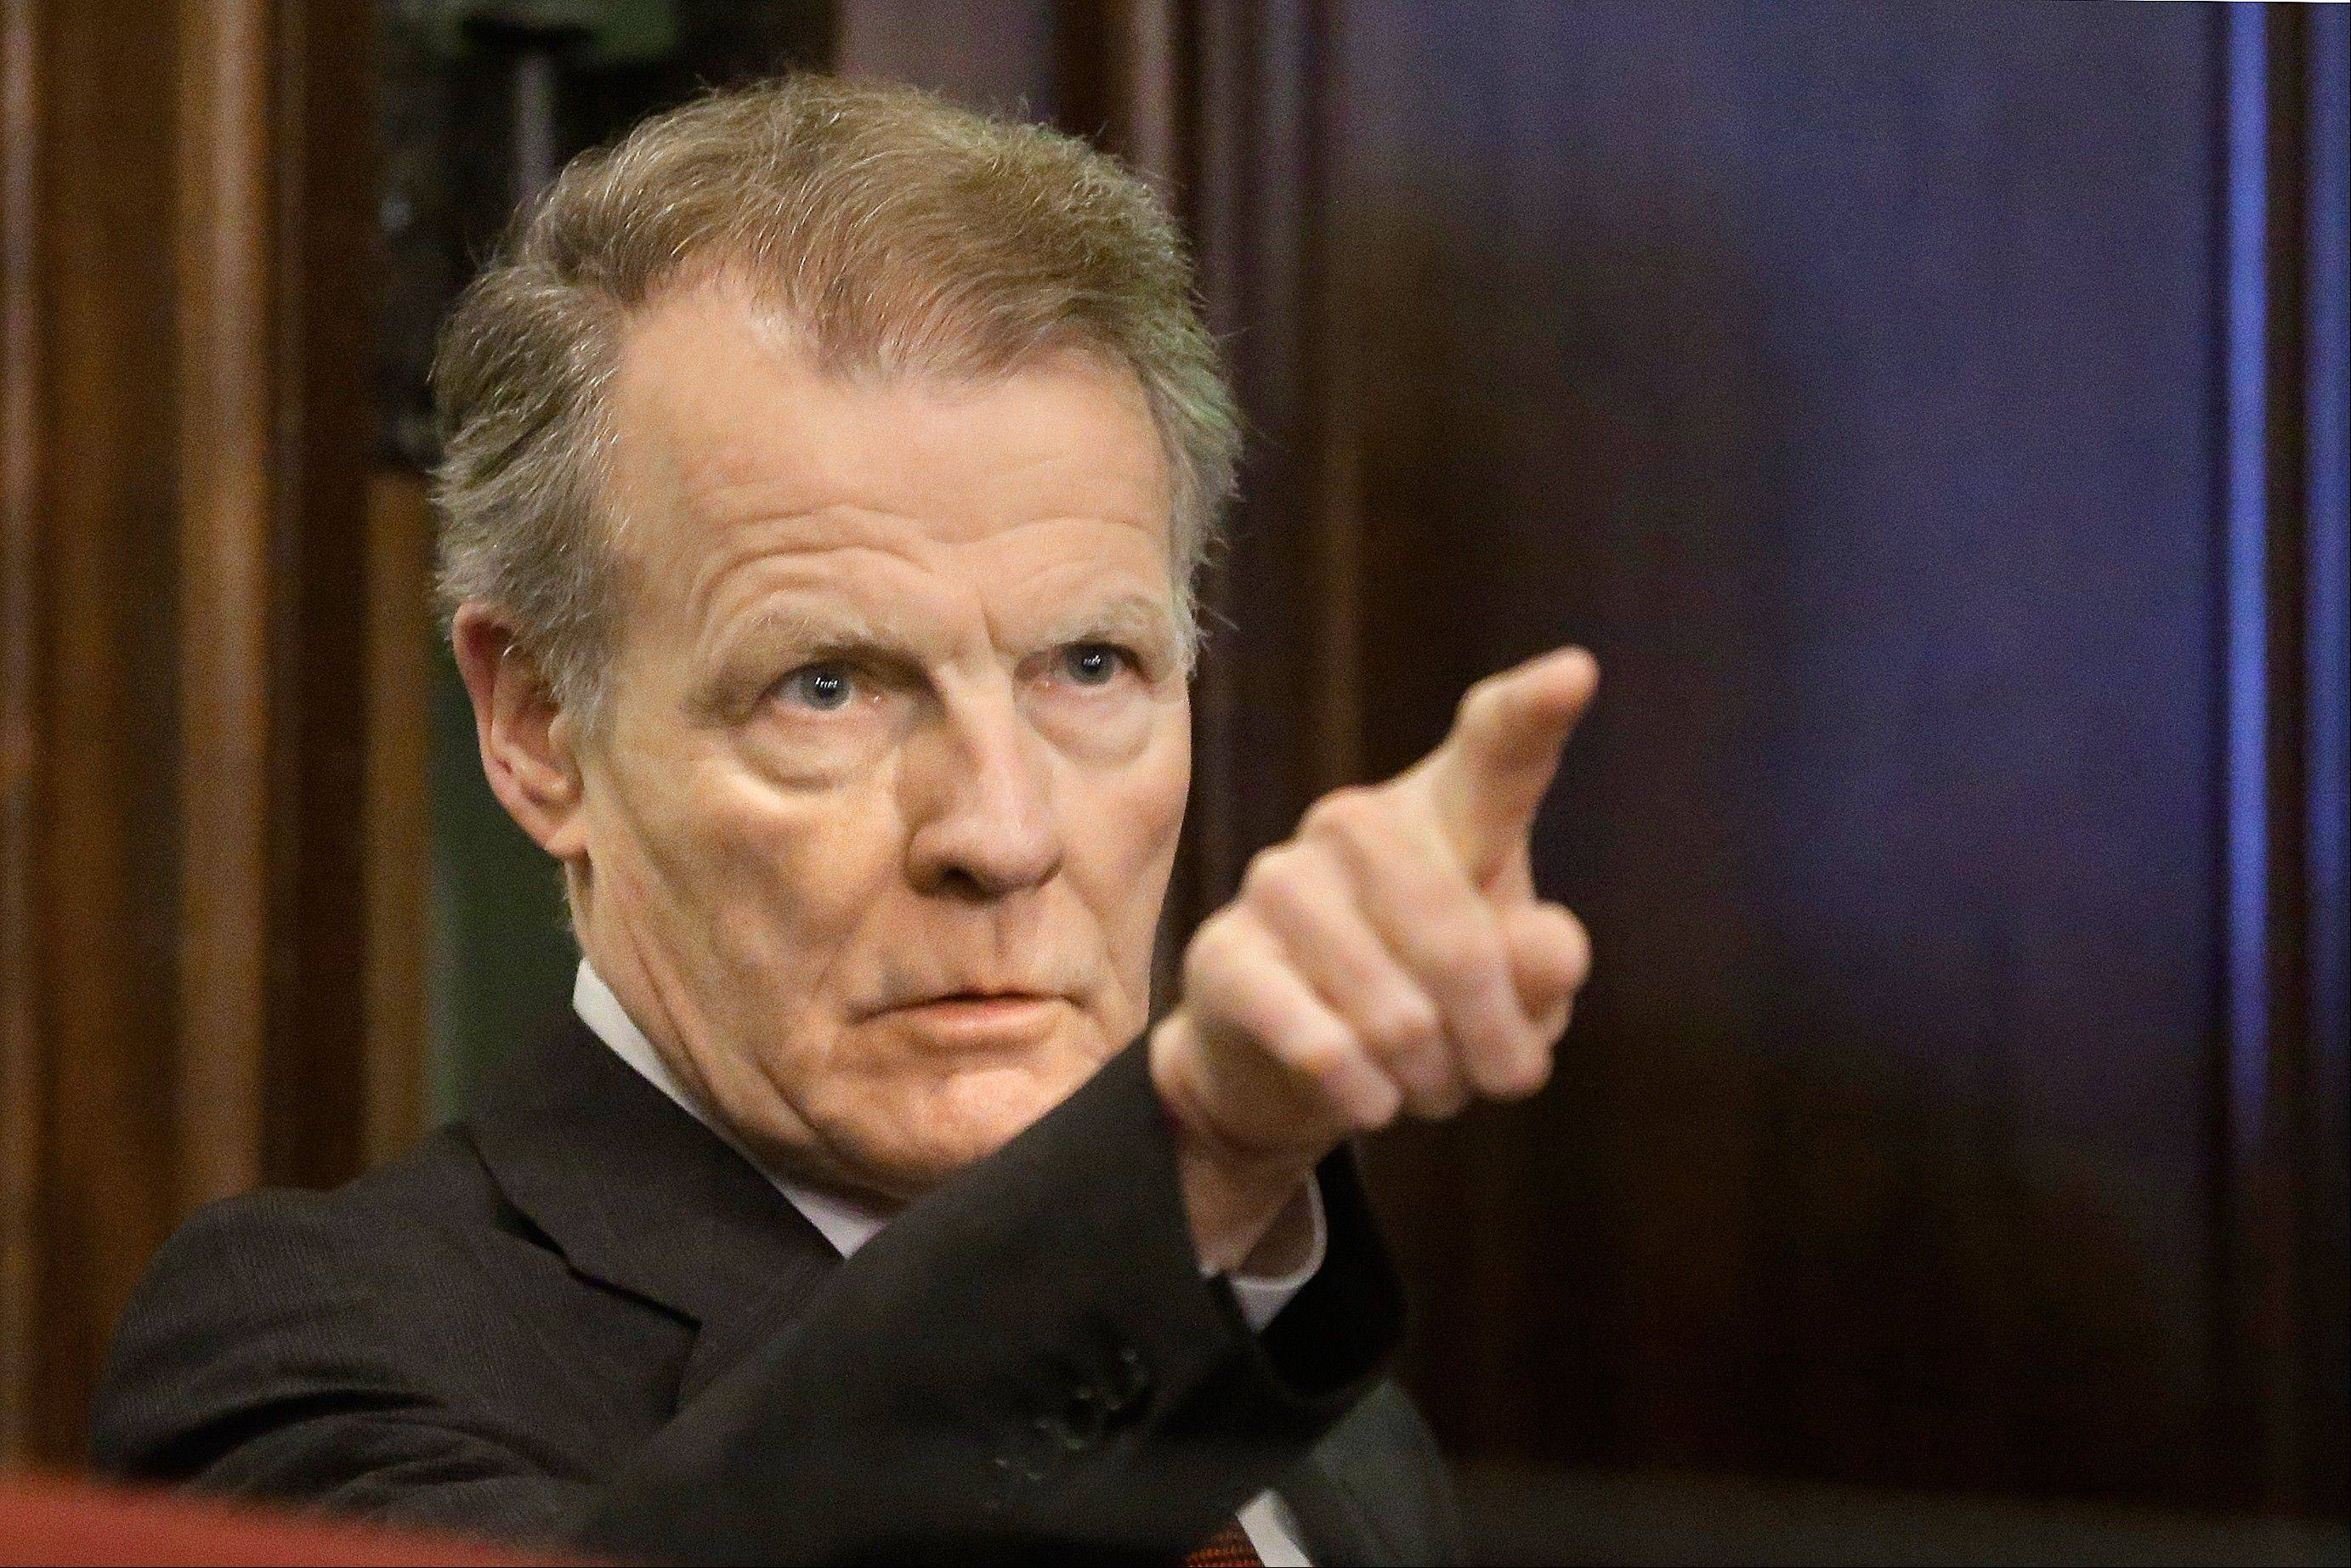 Illinois speaker of the House Michael Madigan of Chicago speaks to lawmakers during a Pension Committee hearing today at the Illinois State Capitol.